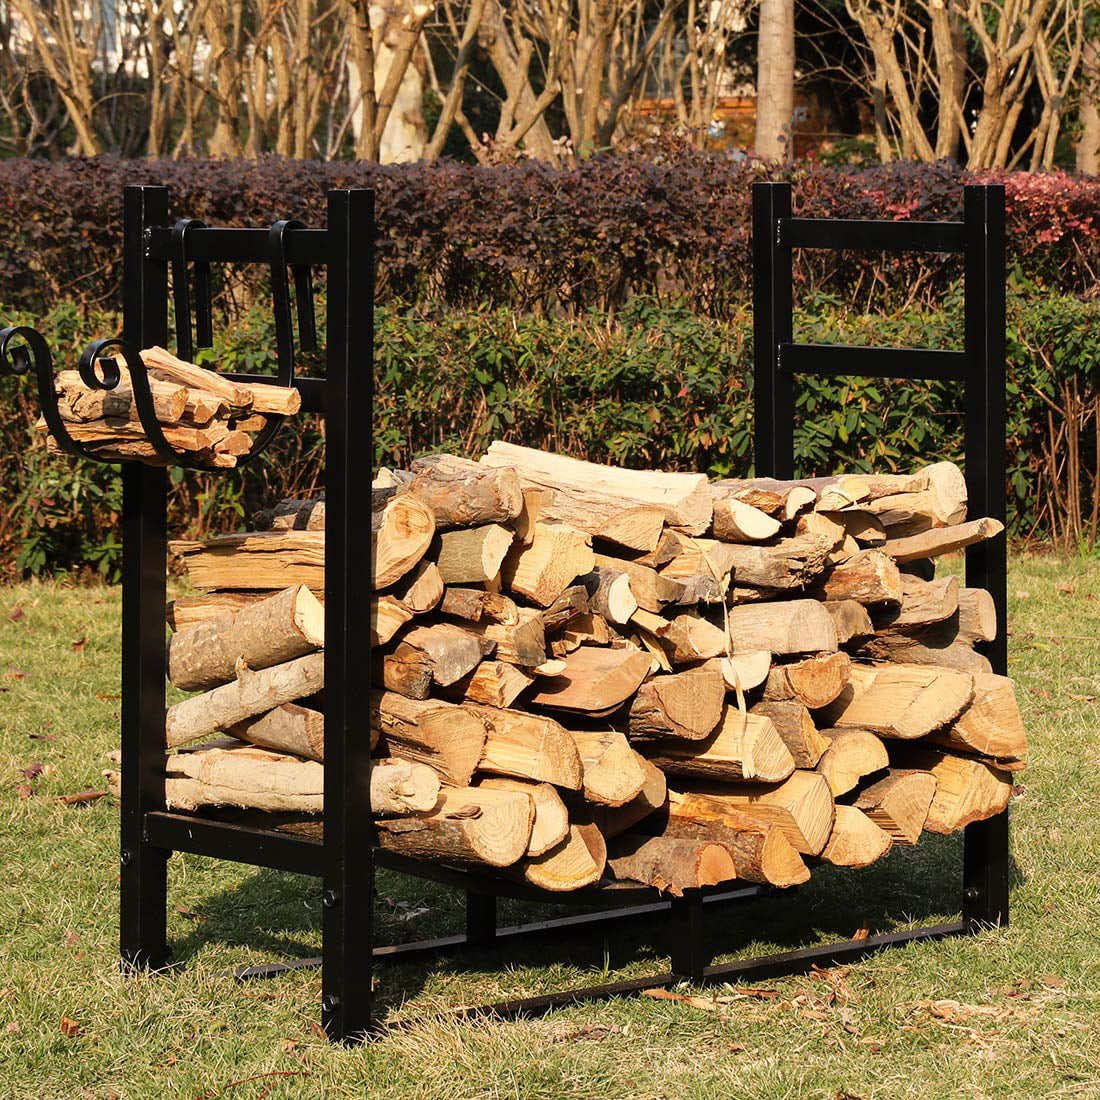 Outdoor Firewood Rack Vivohome 3ft Heavy Duty Indoor Outdoor Firewood Storage Log Rack With Kindling Holder